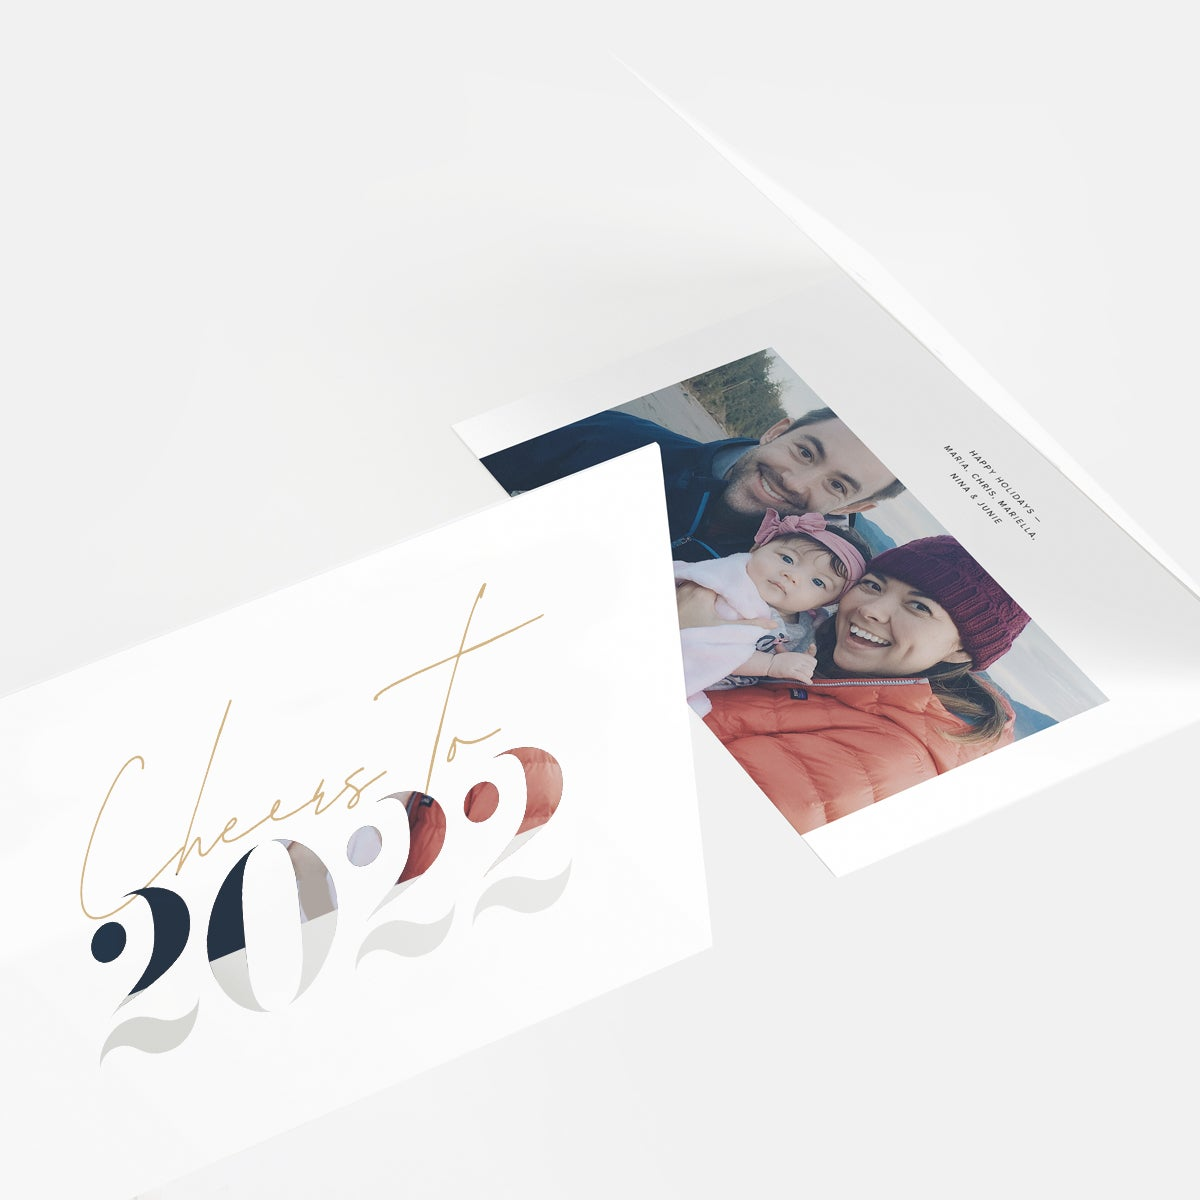 2022 Stencil Letters Holiday Card